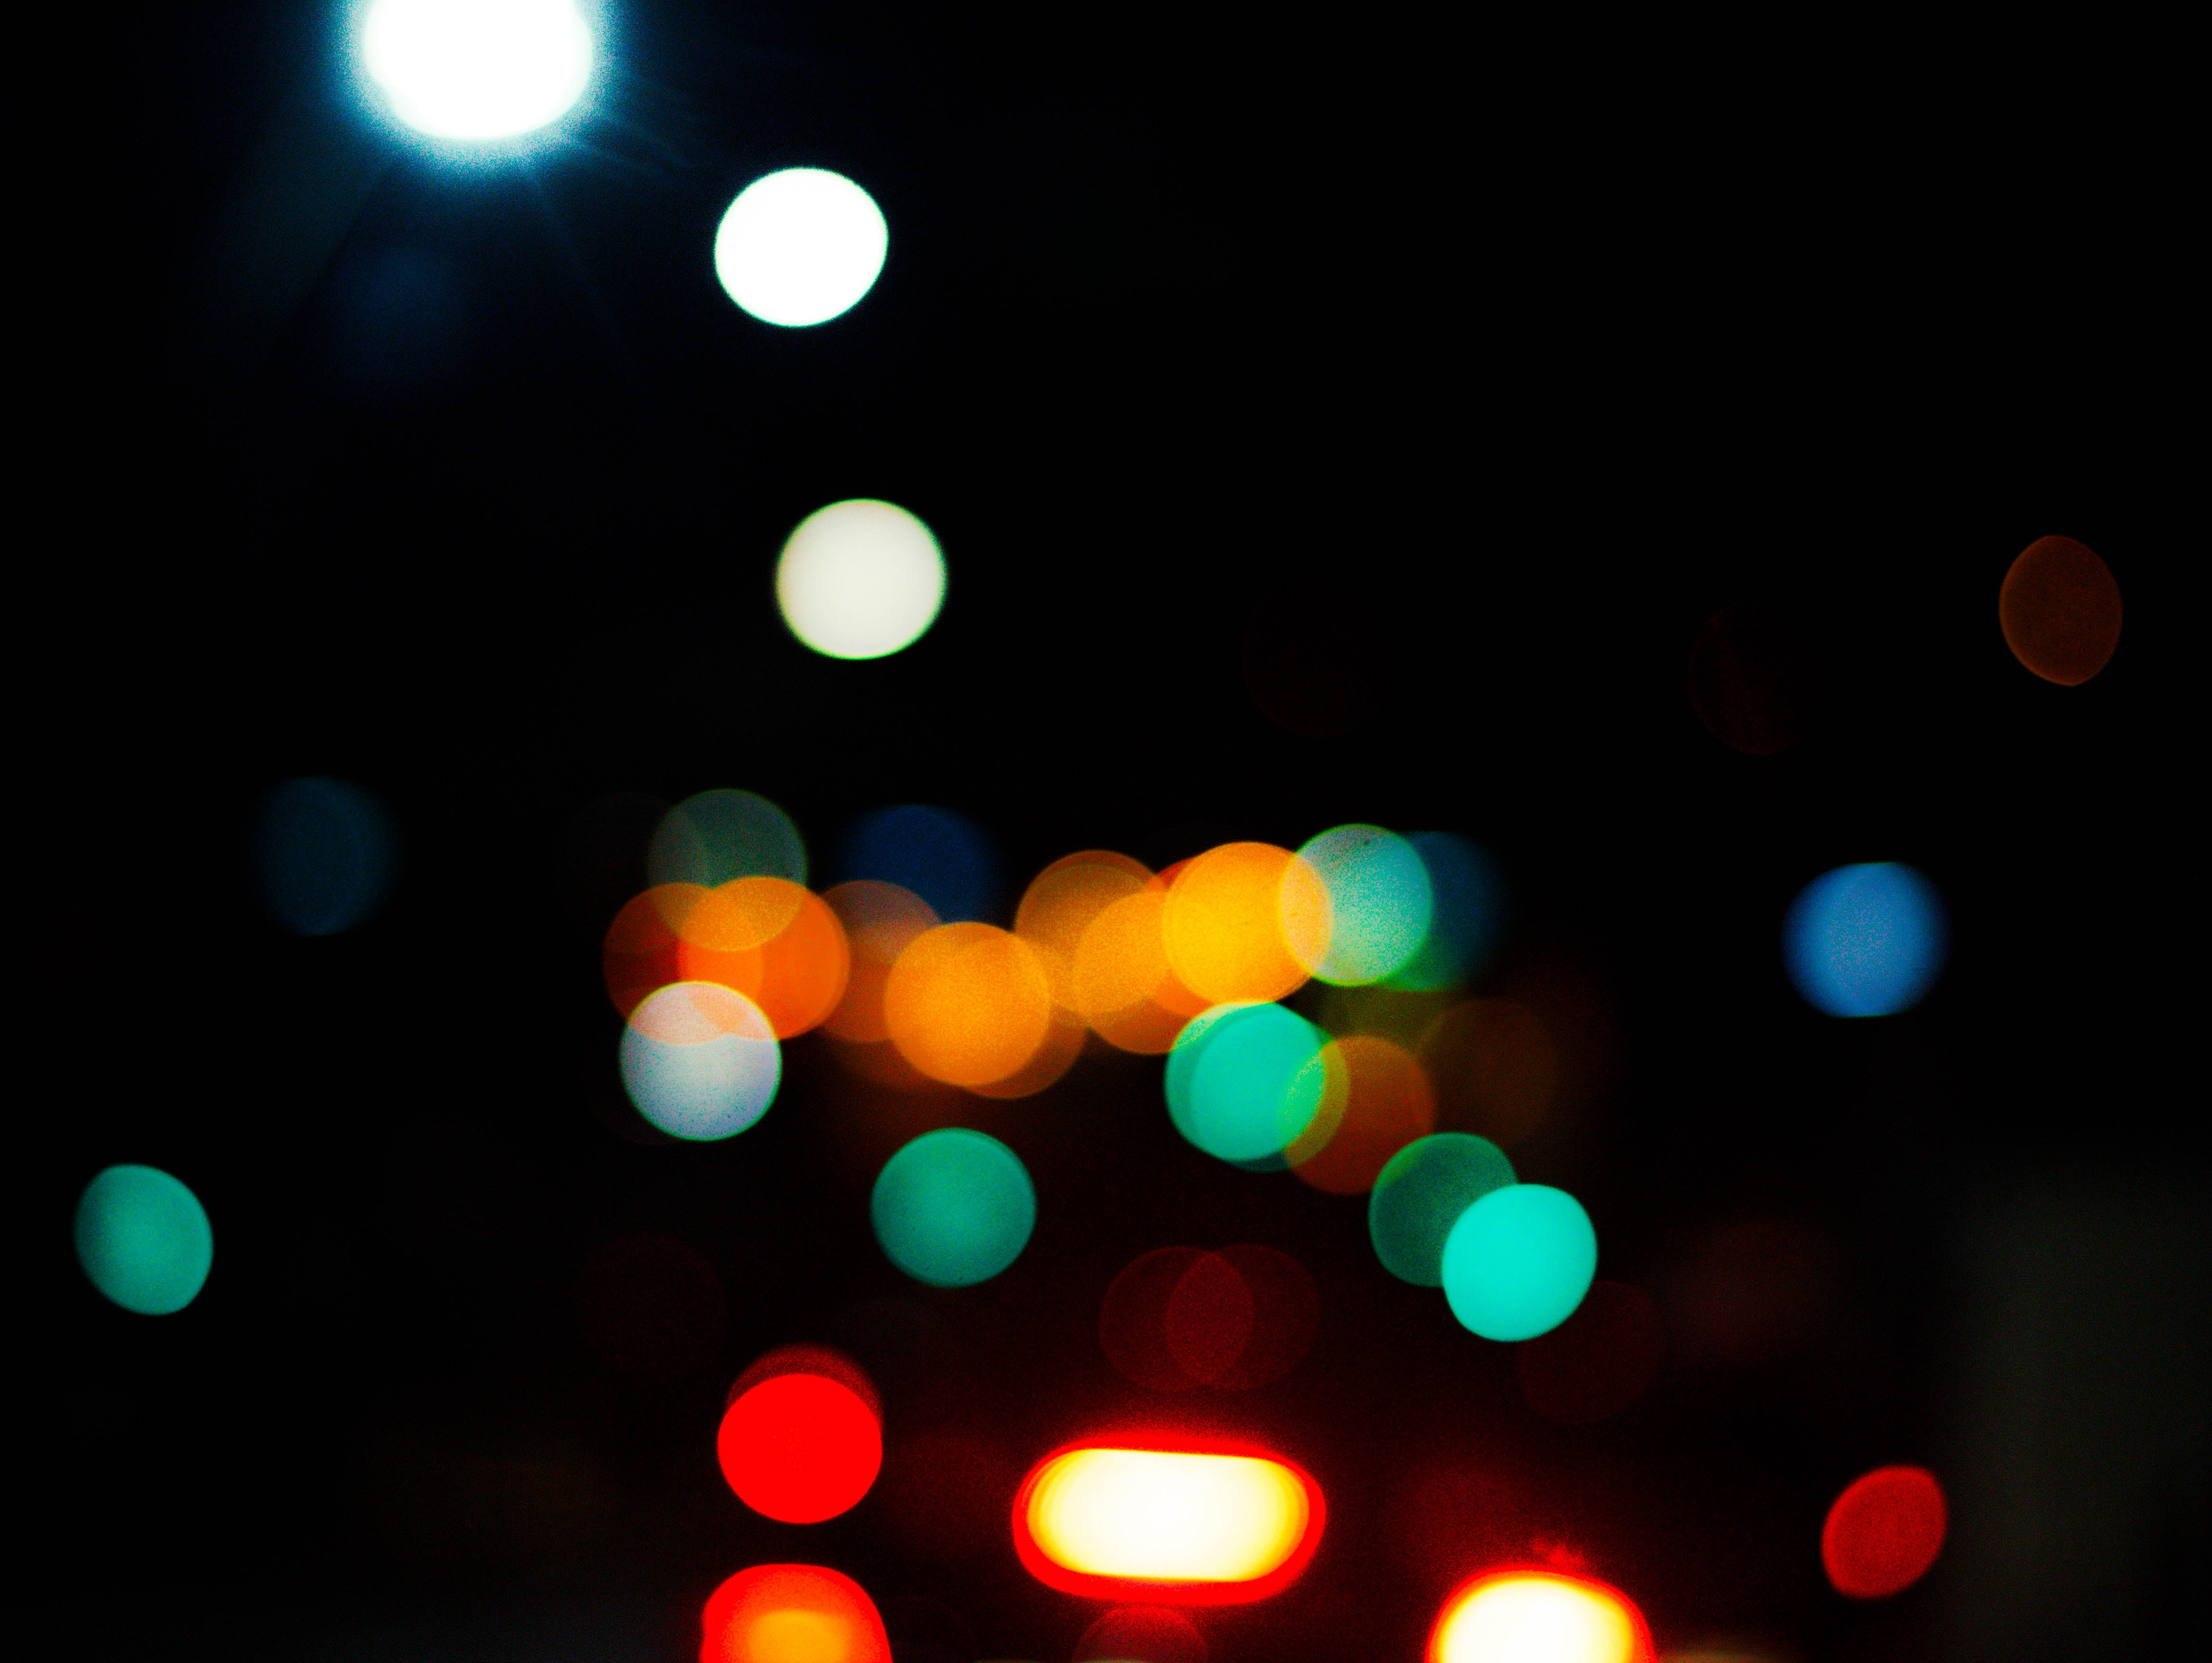 Free stock photo of lights, dark, blur, bokeh